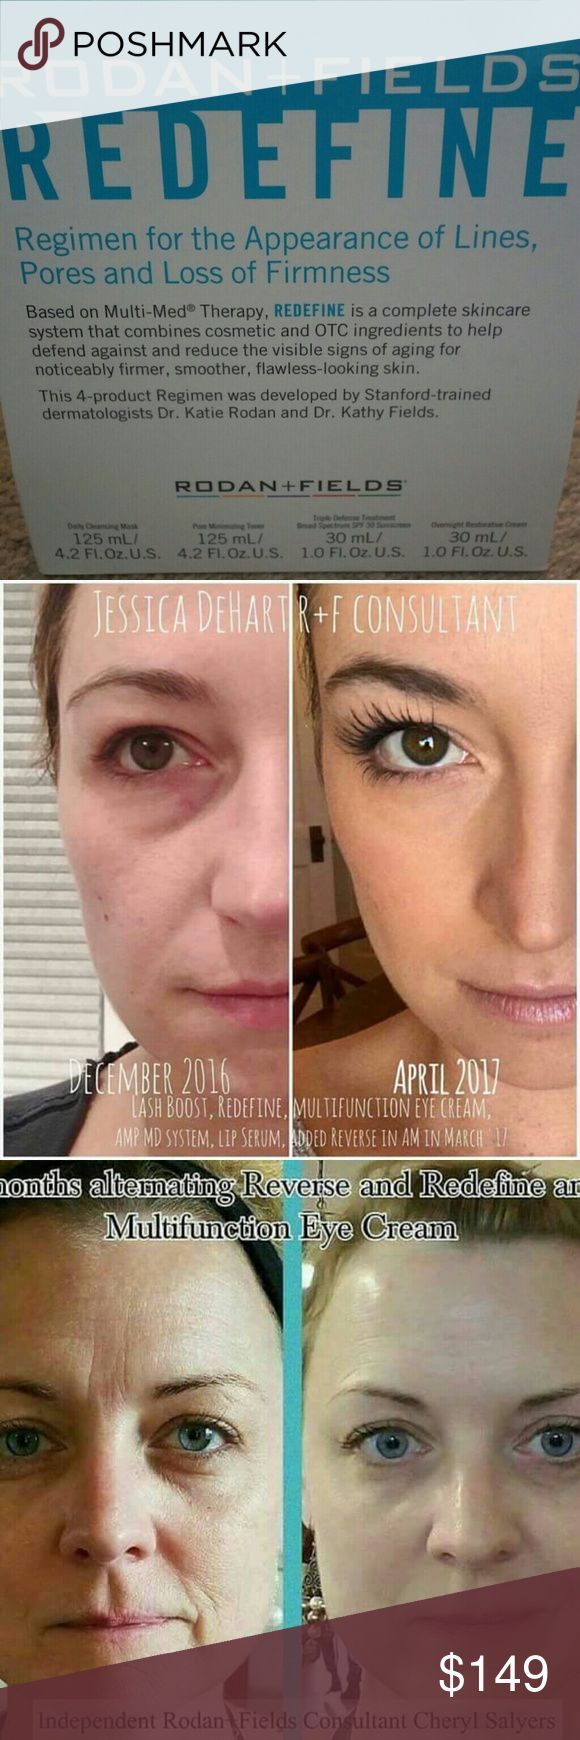 Redefine regimen at consultant price! Limited time Rodan and fields Redefine regimen! Get looking younger with no more wrinkles, fine lines, smoother and more even skin tine DO NOT PURCHASE THIS LISTING!  Will have to purchase through rodan and fields website as preferred customer then reimbursed immediately through paypal. Will get free shipping You have to contact me through fb messager to get you listed and reimbursed. My team going for final month of lexus. Limited spots open for deal…